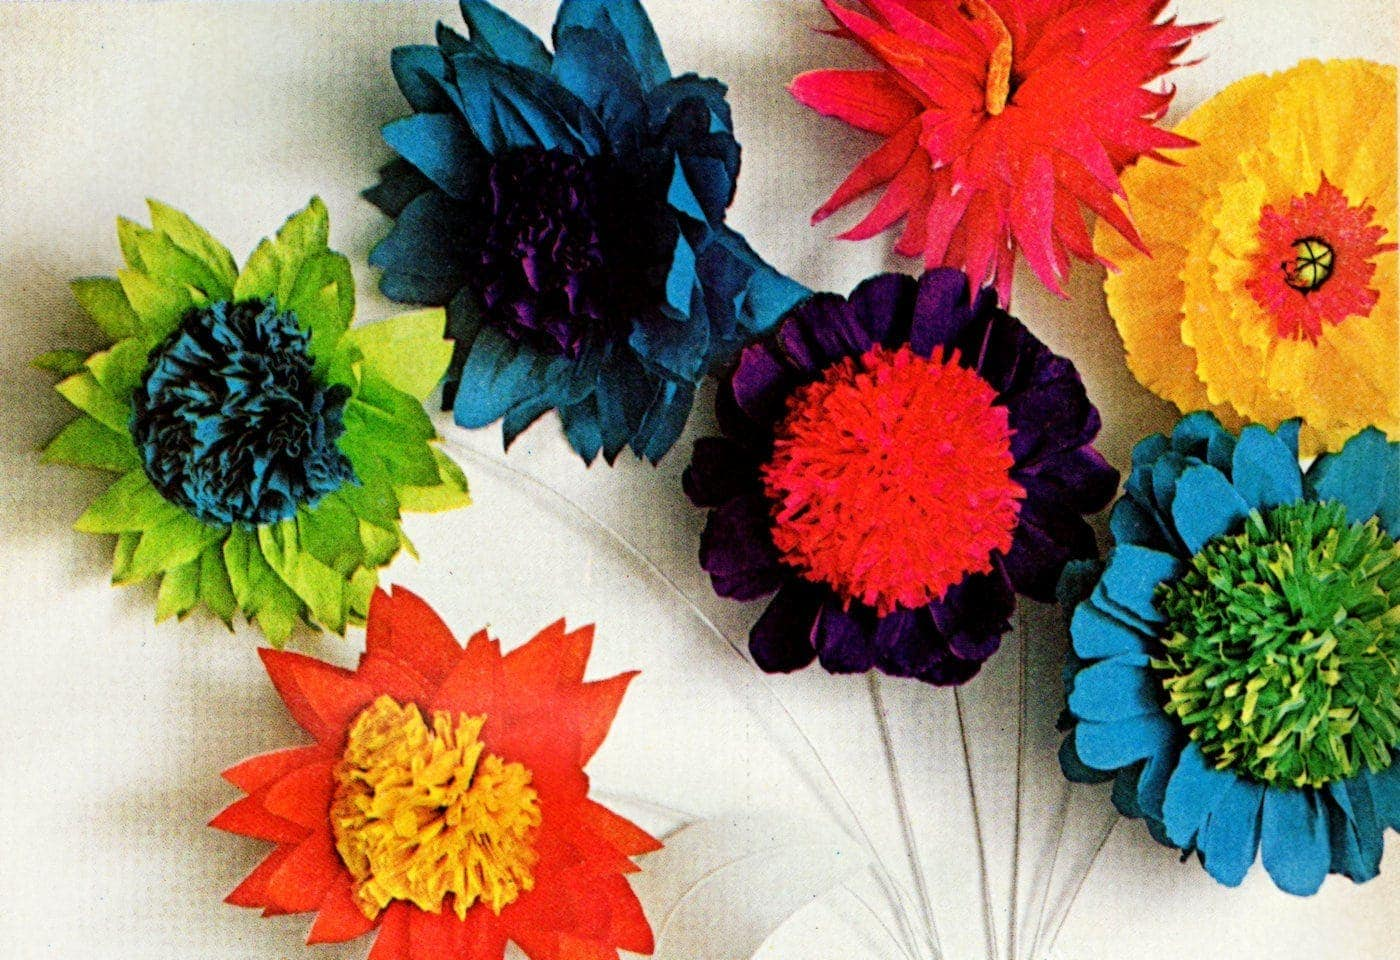 Dennison crepe paper flowers from 1967